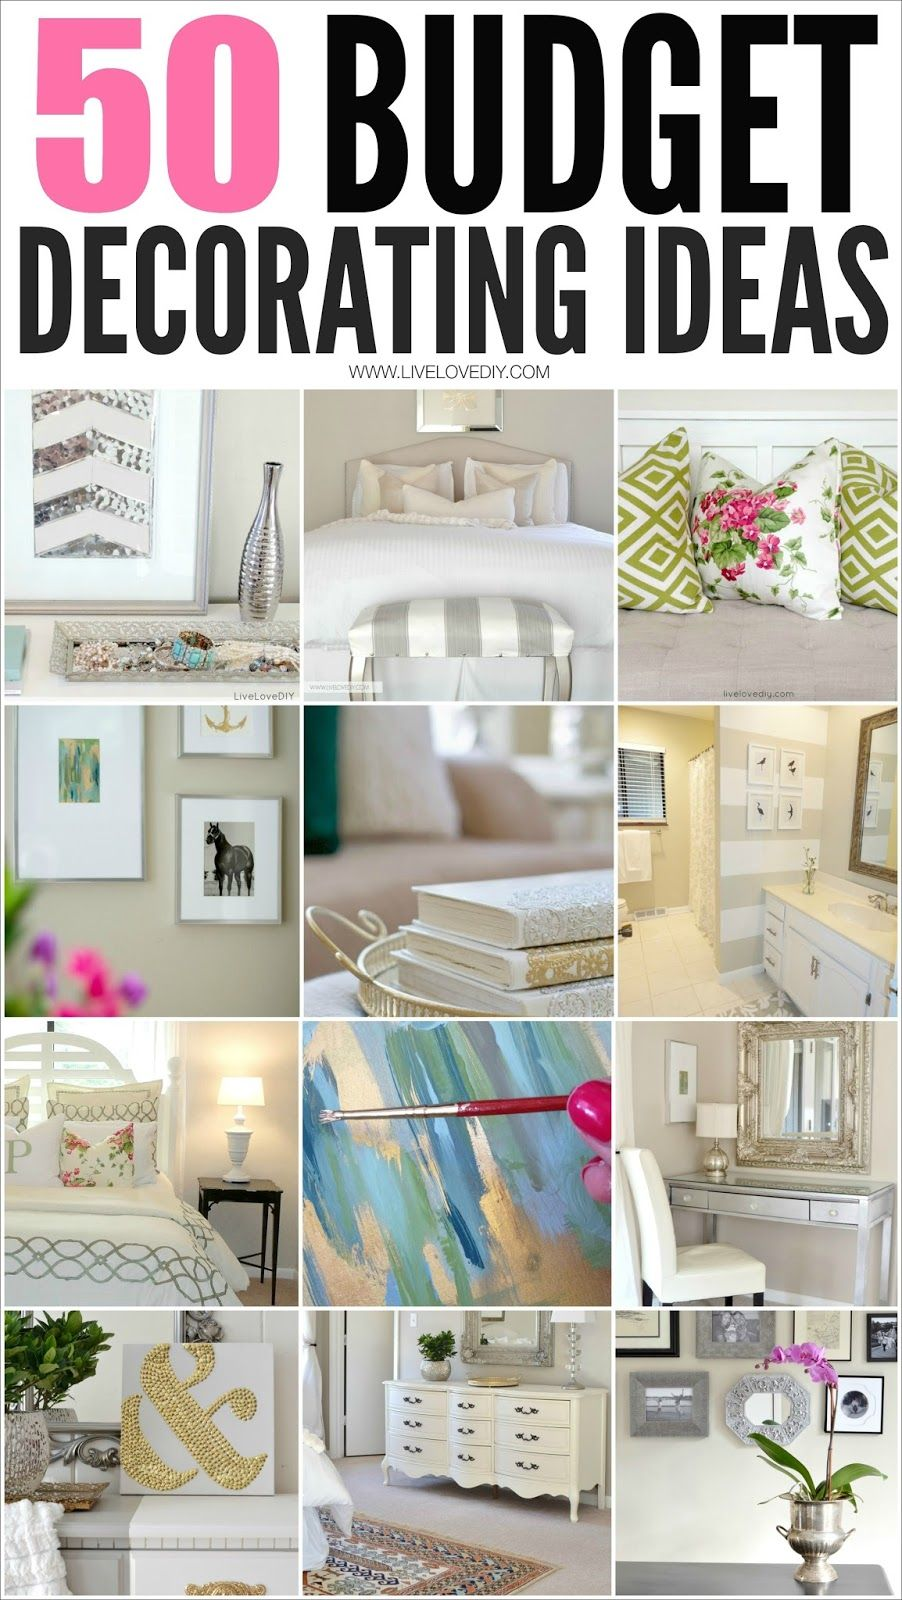 50 Budget Decorating Tips You Should Know Livelovediy Decorating On A Budget Home Decor Diy Home Decor